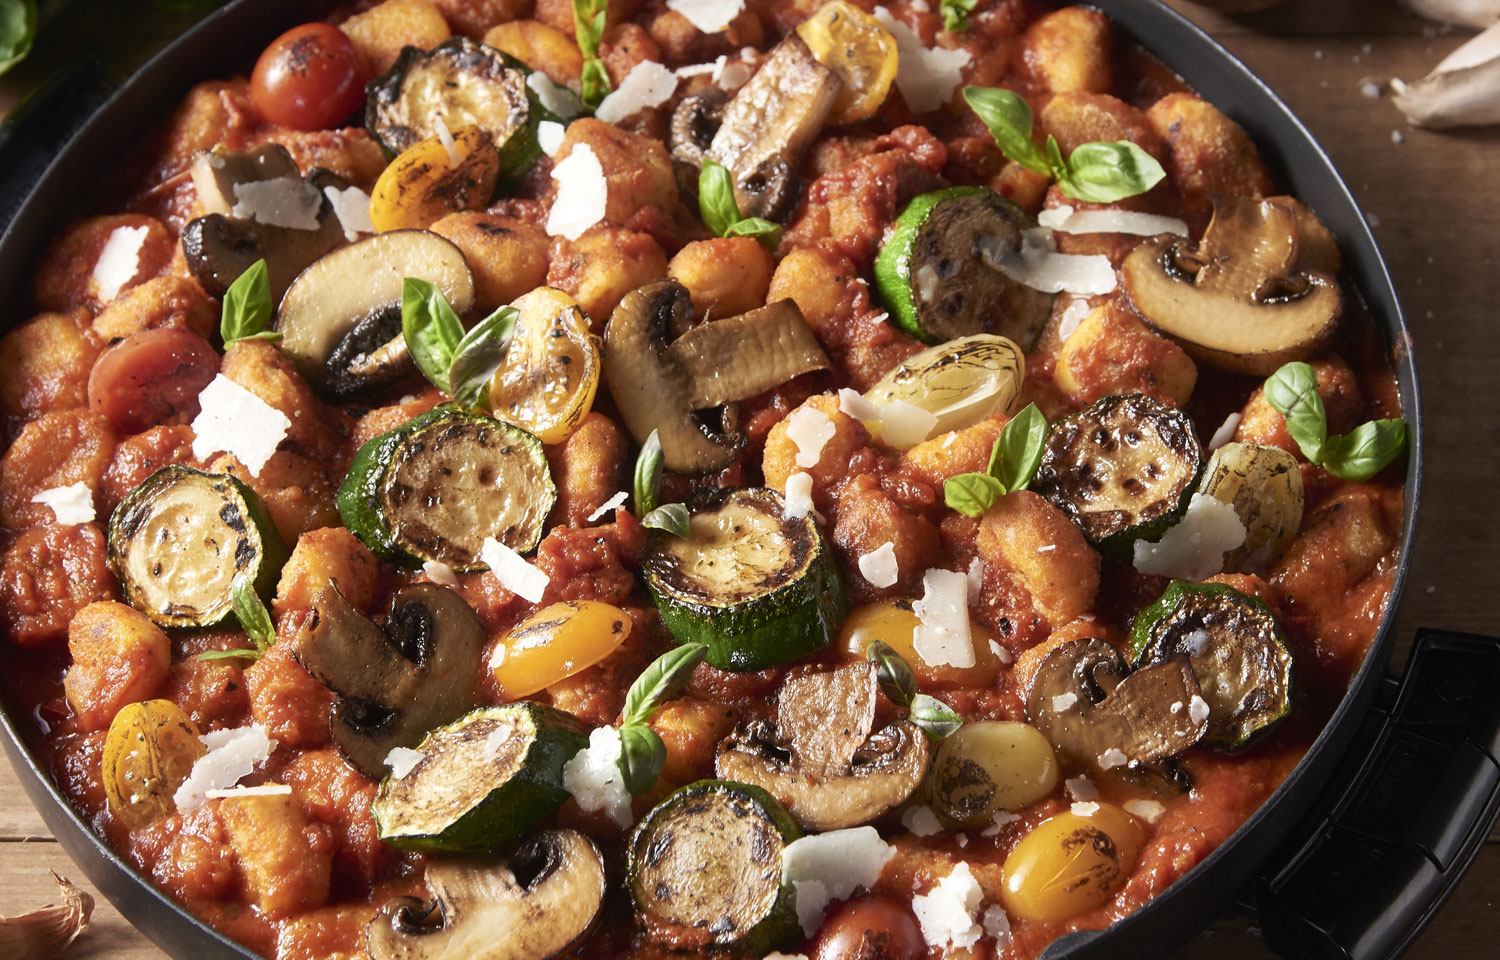 Roast gnocchi with Mediterranean vegetables and tomato